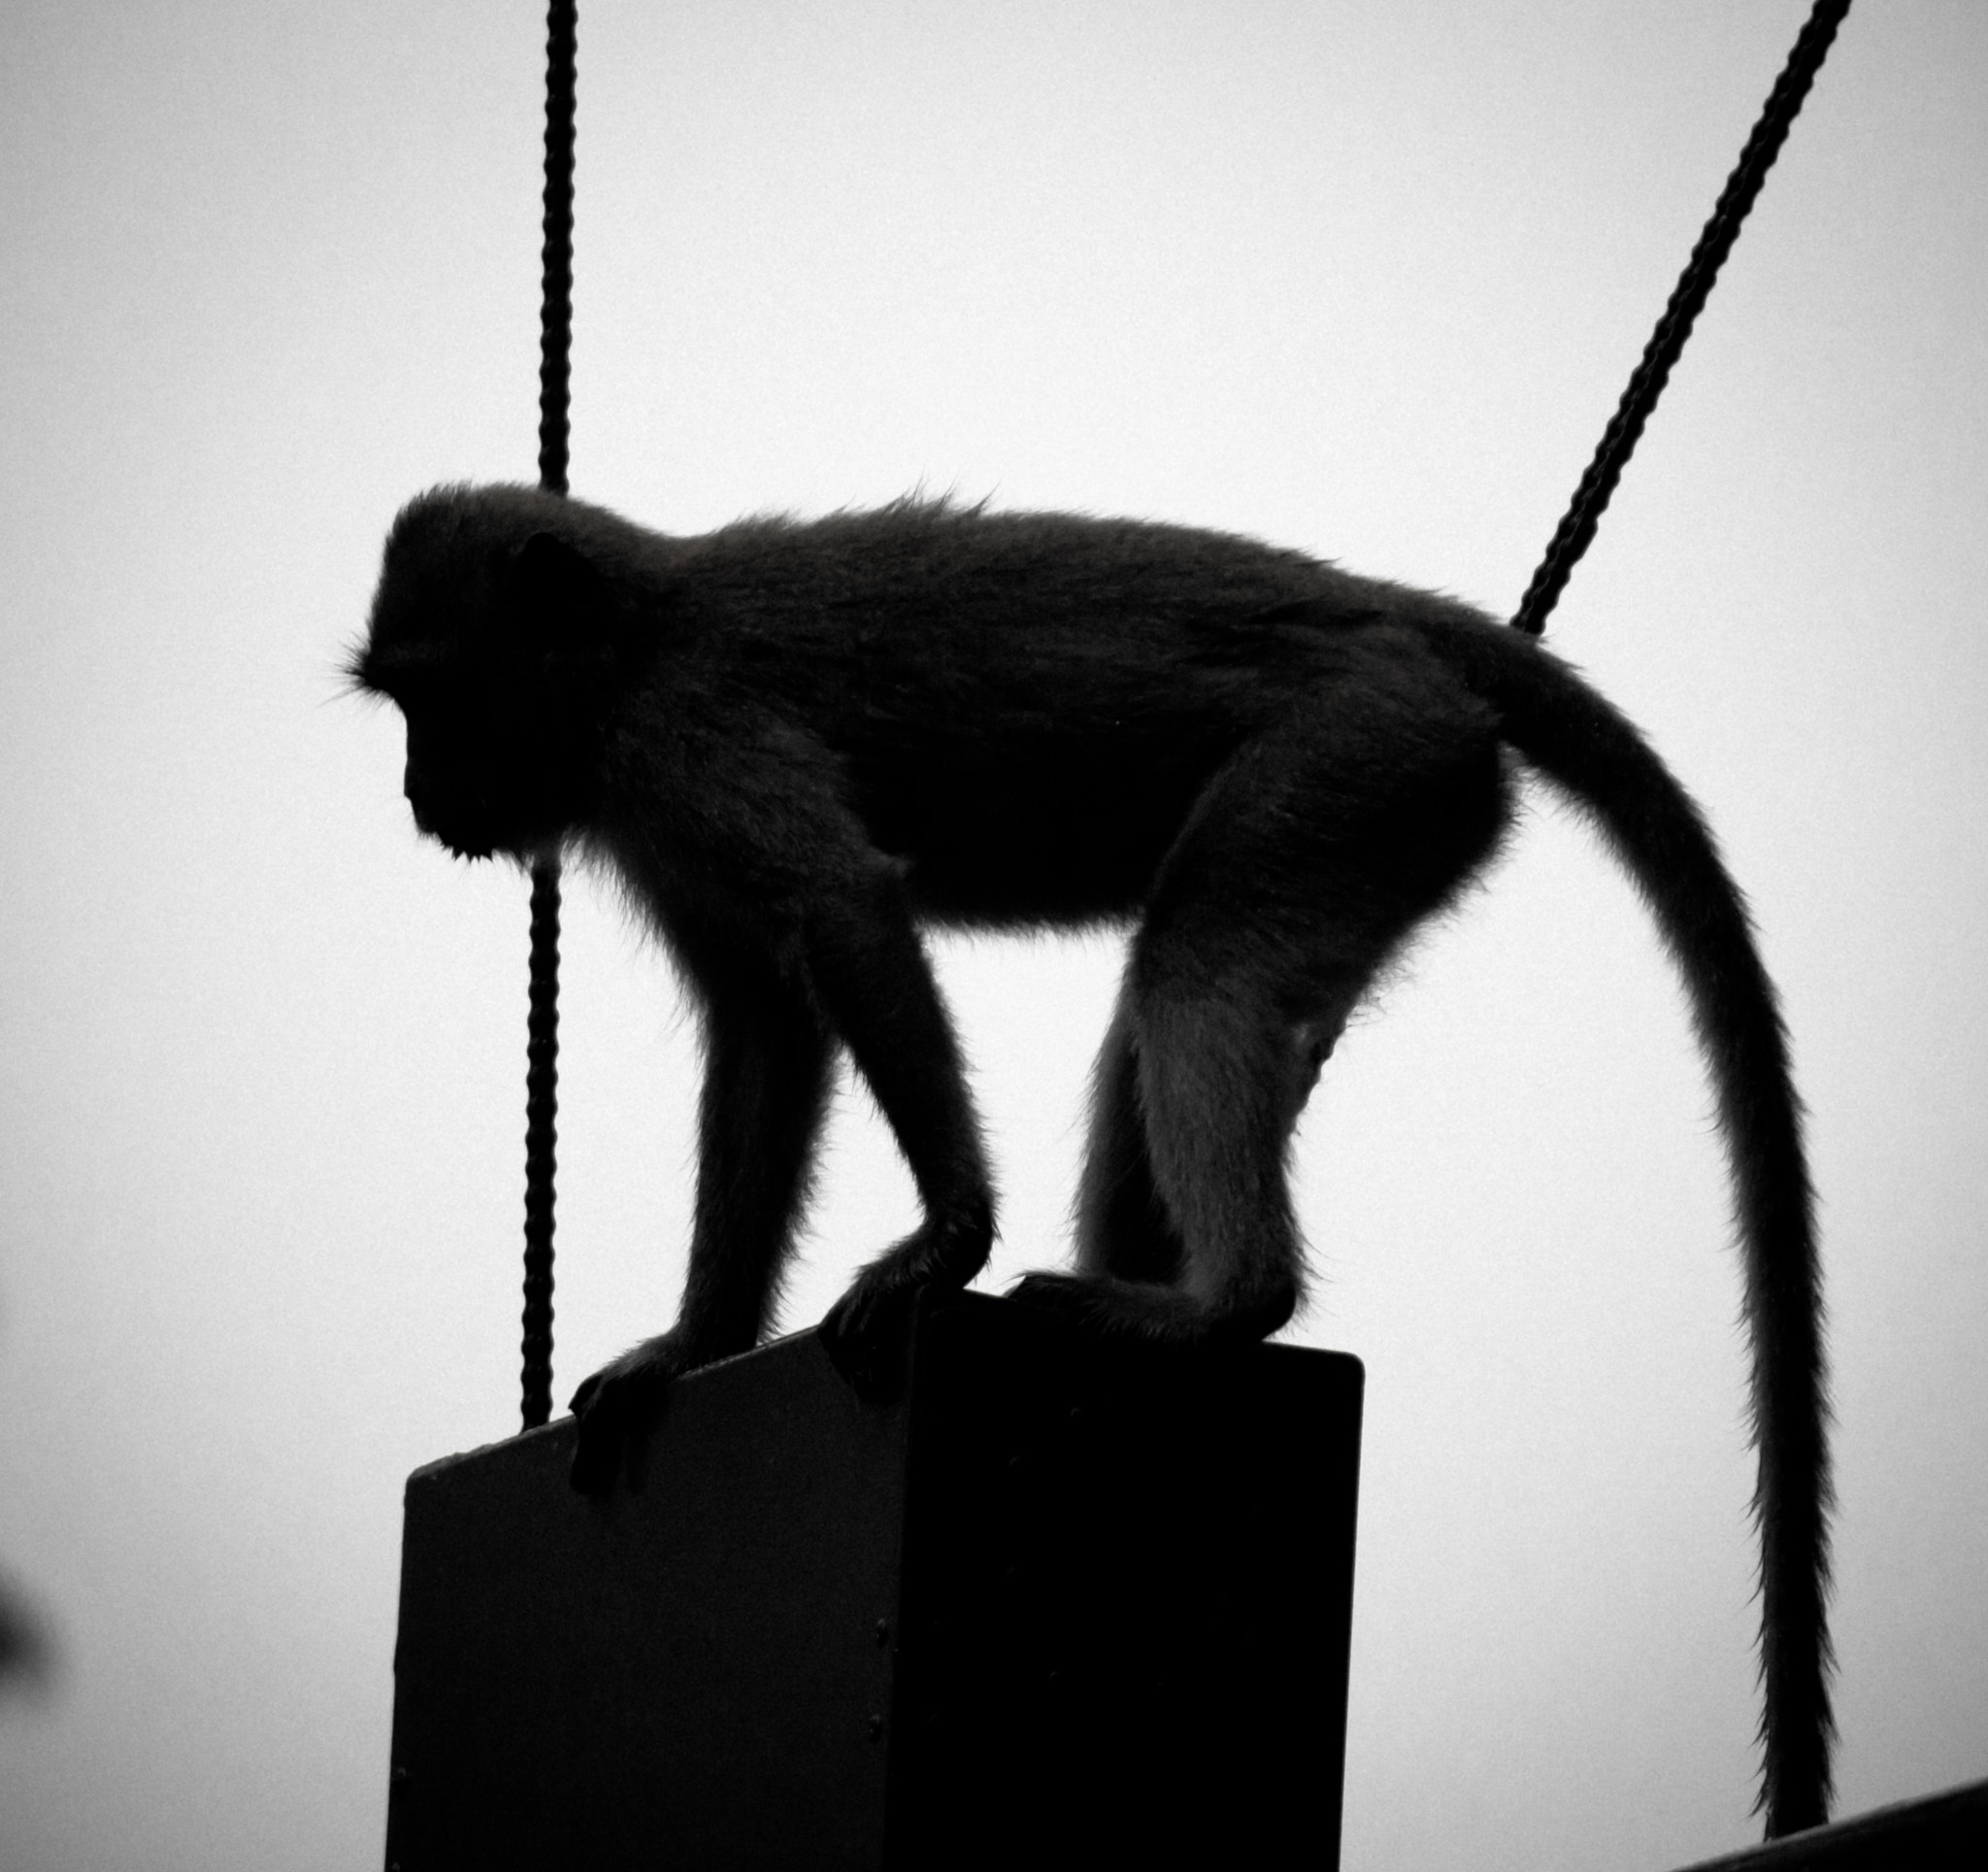 Photograph Backlit monkey by smash ouille on 500px